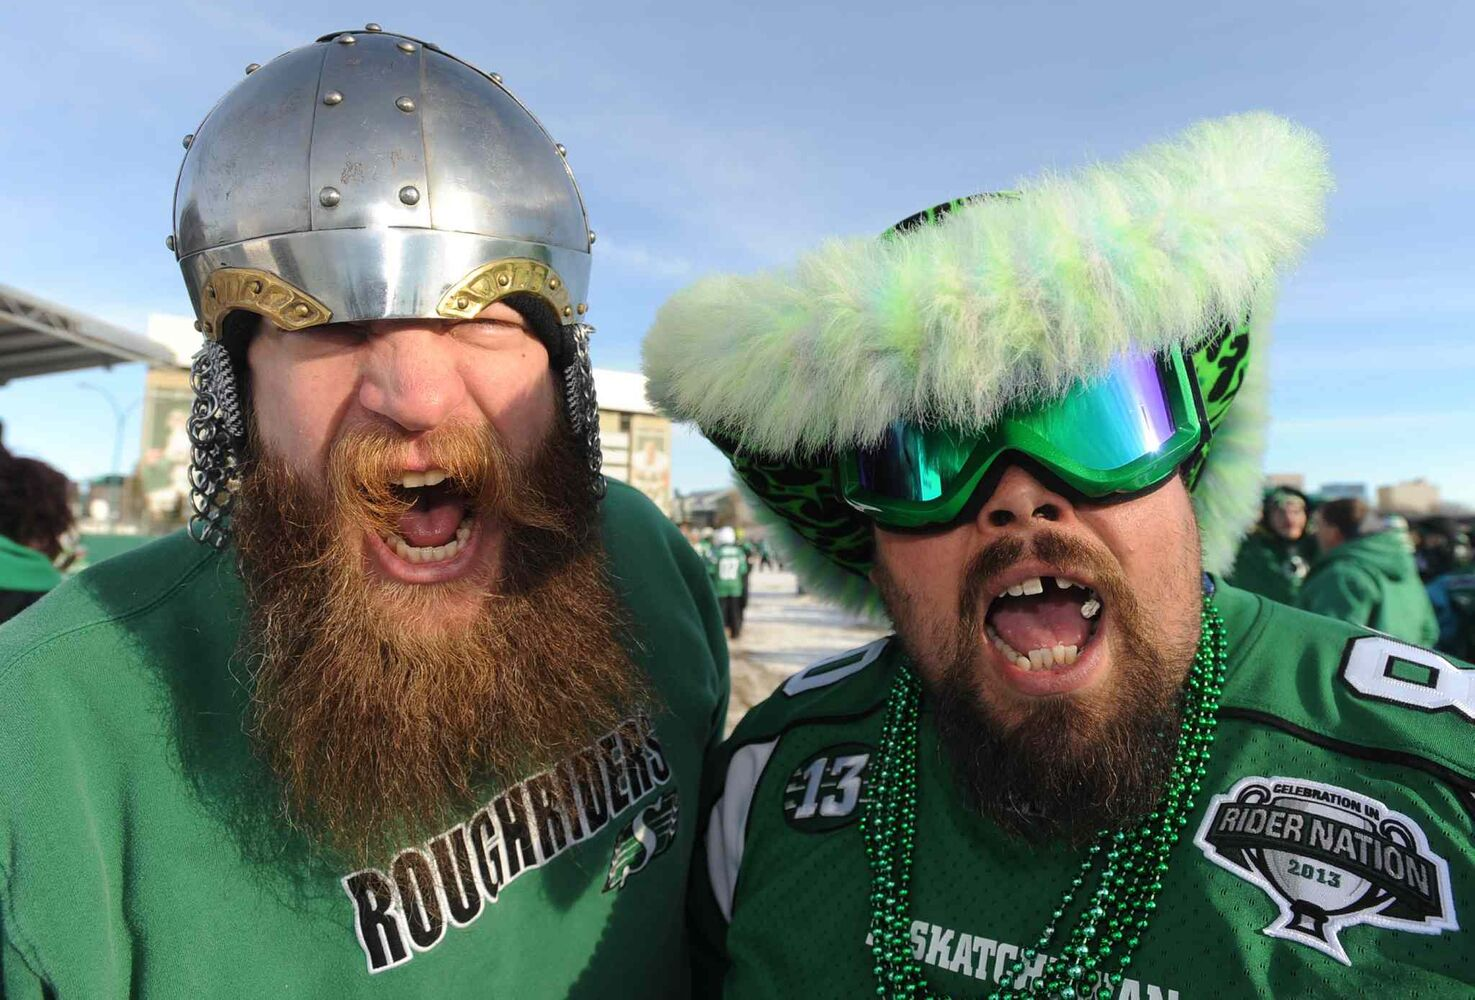 Saskatchewan Roughriders fans Ben Bandenberg (left) and Dave Friesen ham it up outside Mosaic Stadium before the Grey Cup game.